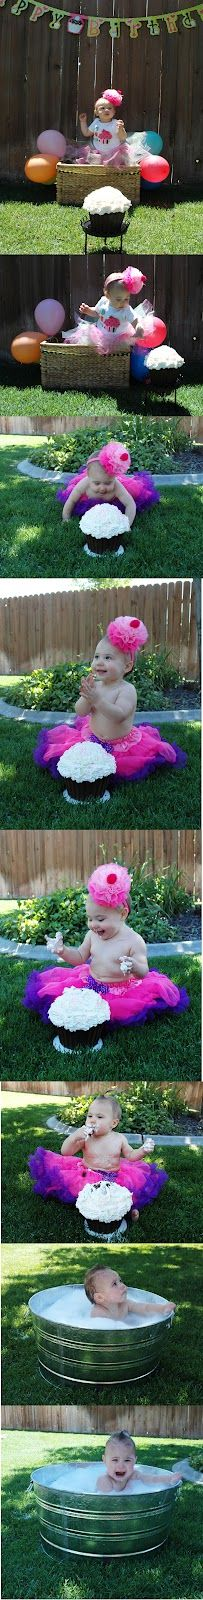 My little princess's first birthday pictures....The Keeper of the Cheerios